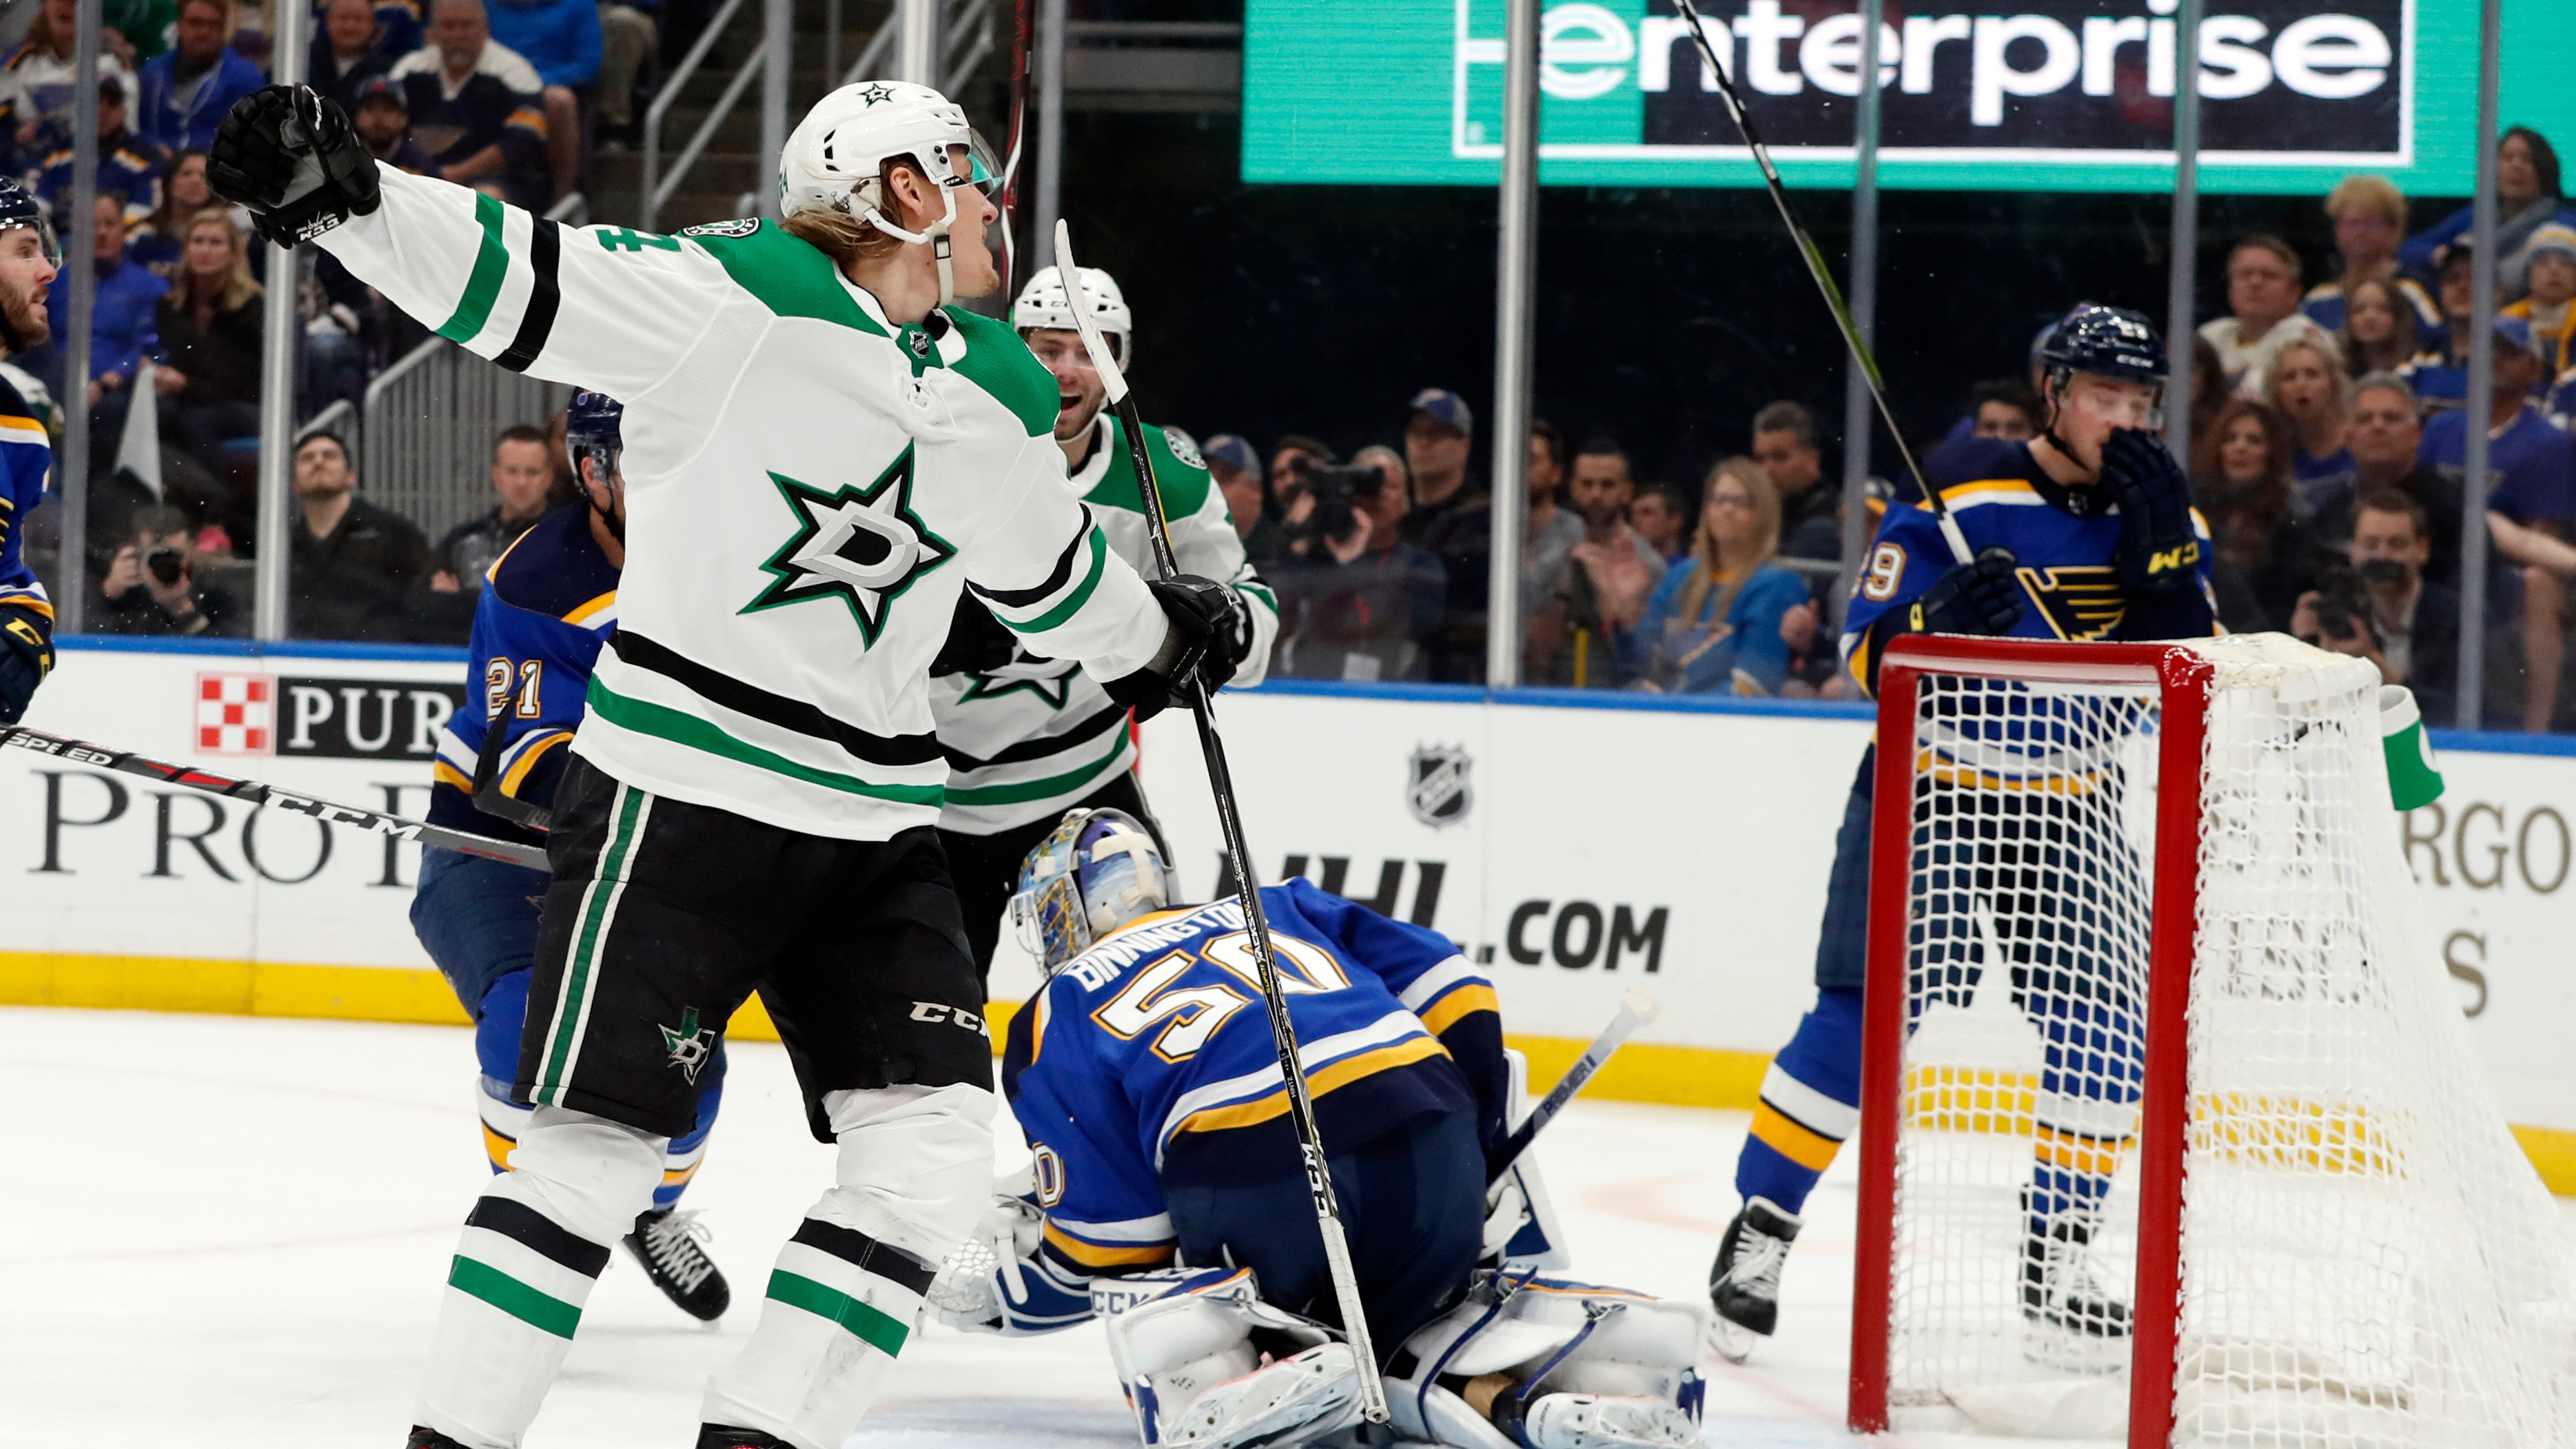 Blues At Stars Game 3 Odds Dallas Favored Monday But Not In Series